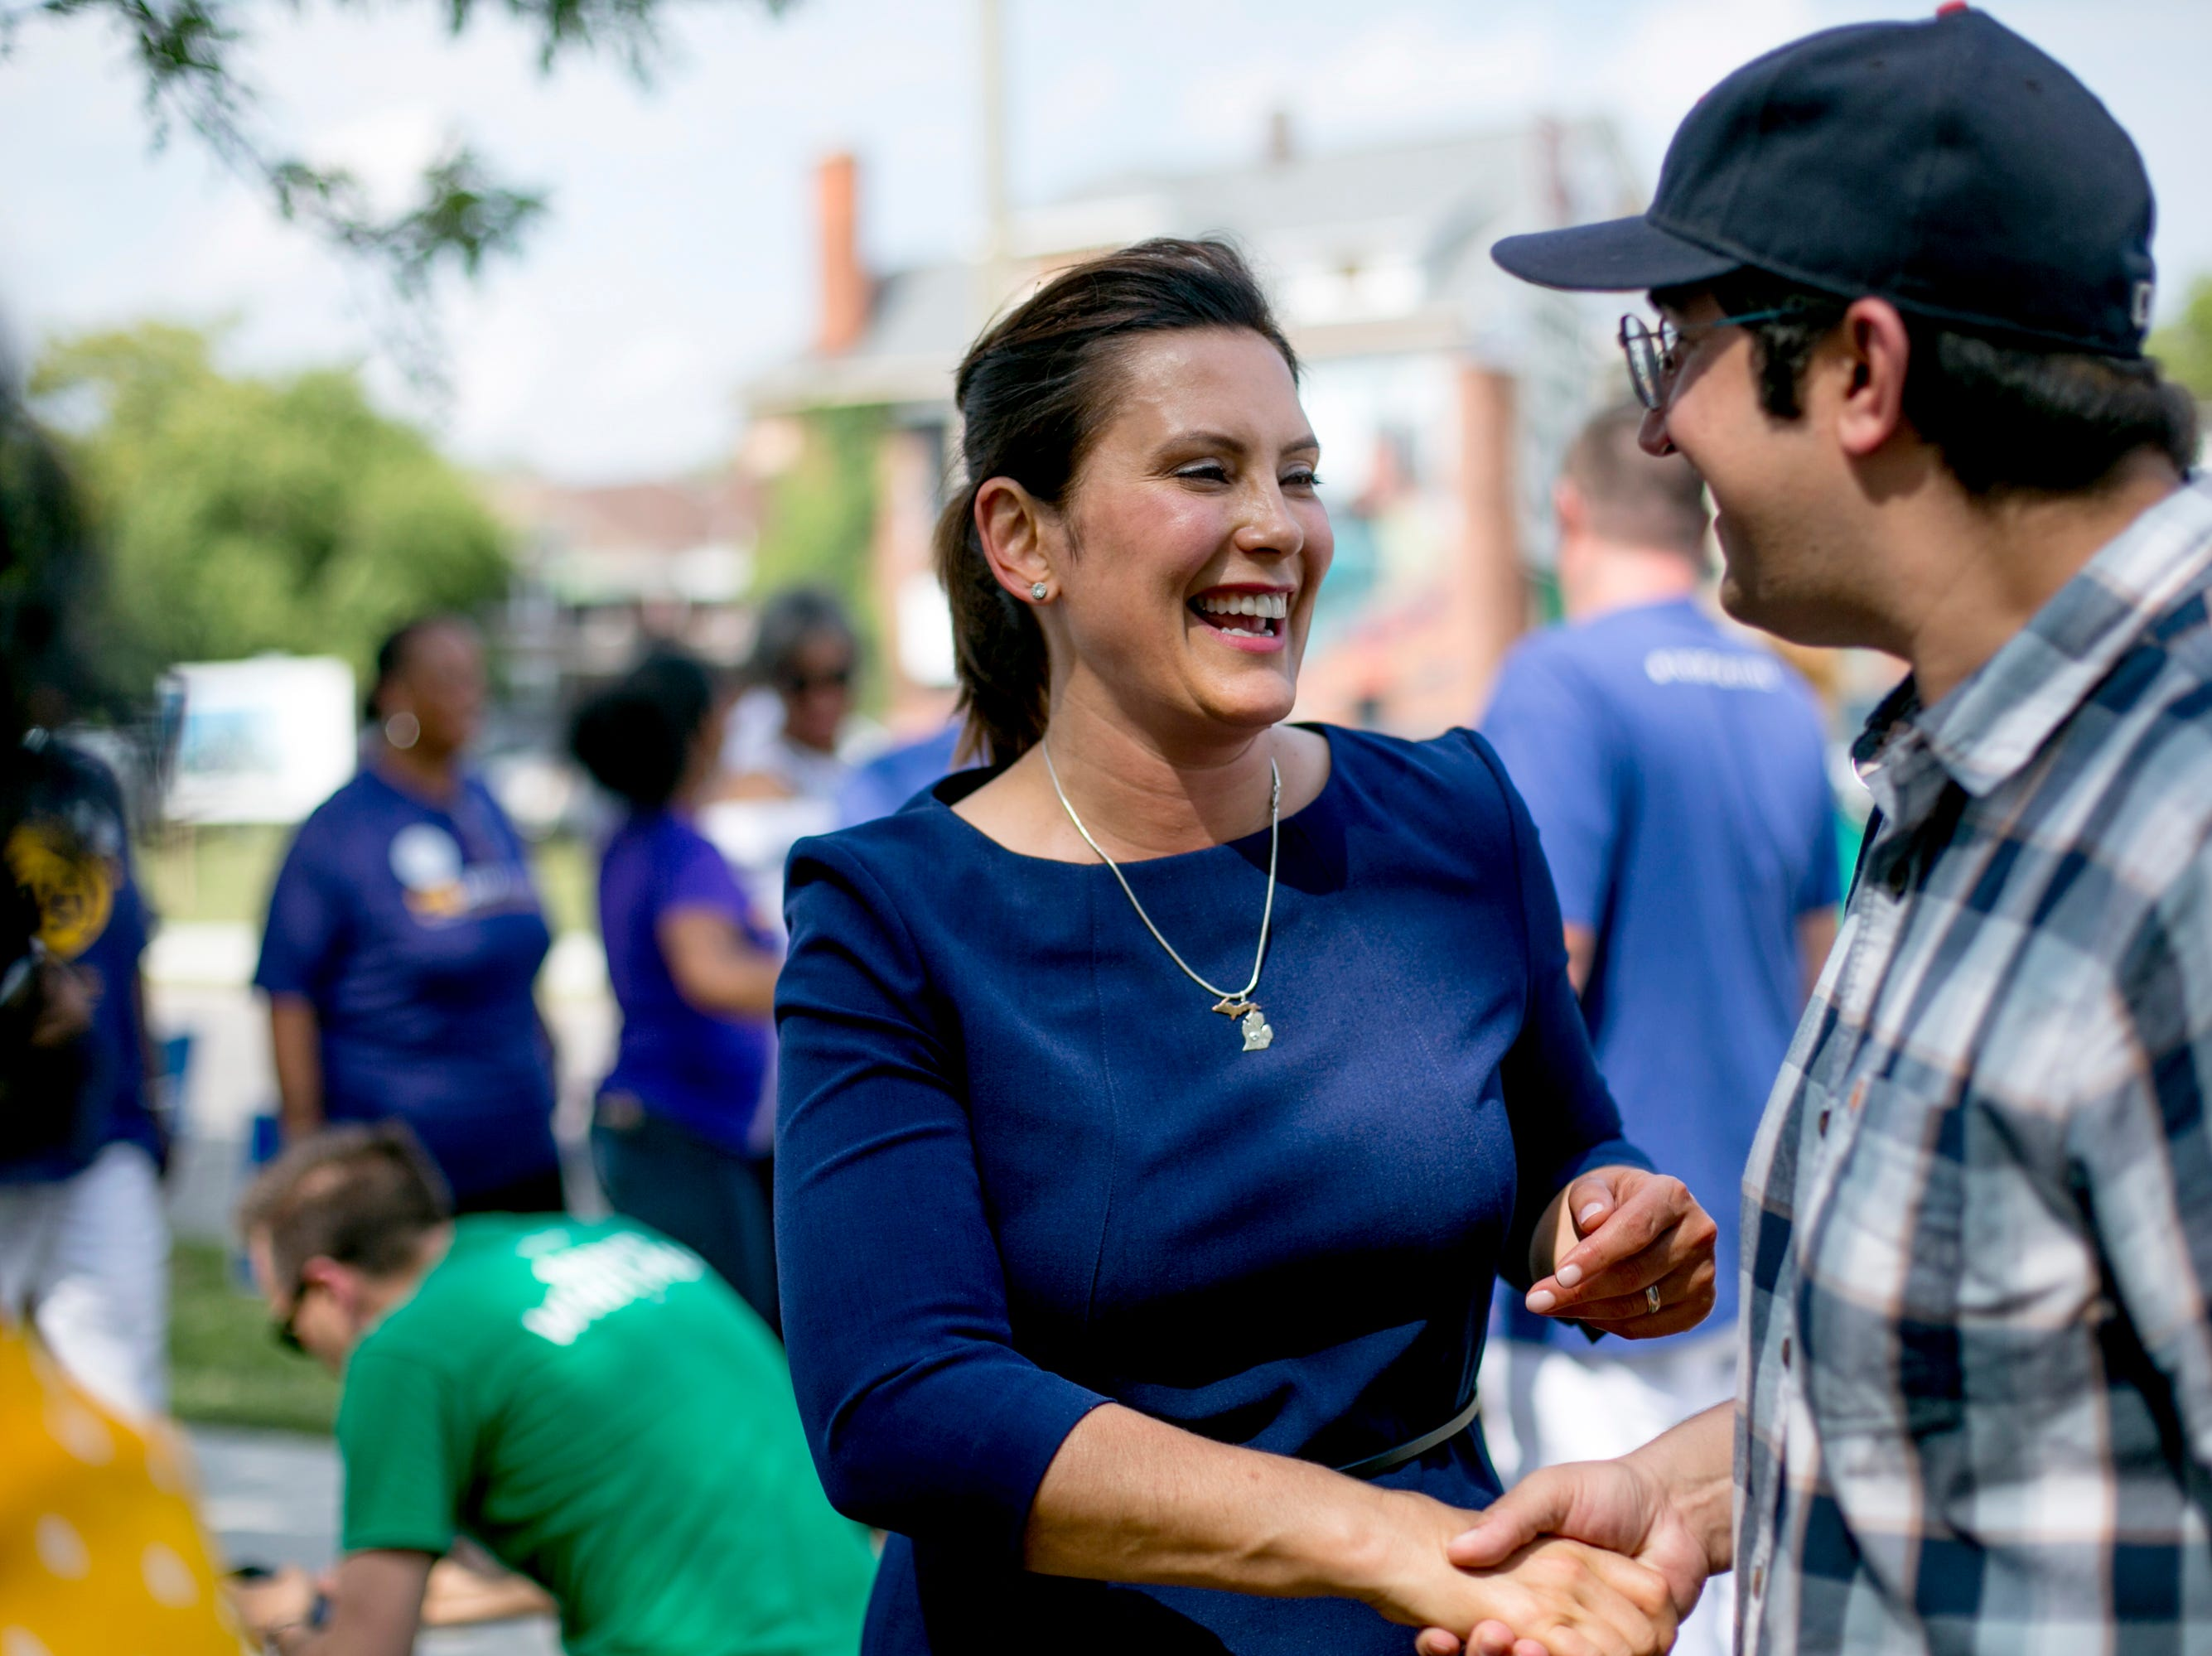 Gubernatorial candidate Gretchen Whitmer greets supporters during a campaign event at Gordon Park.